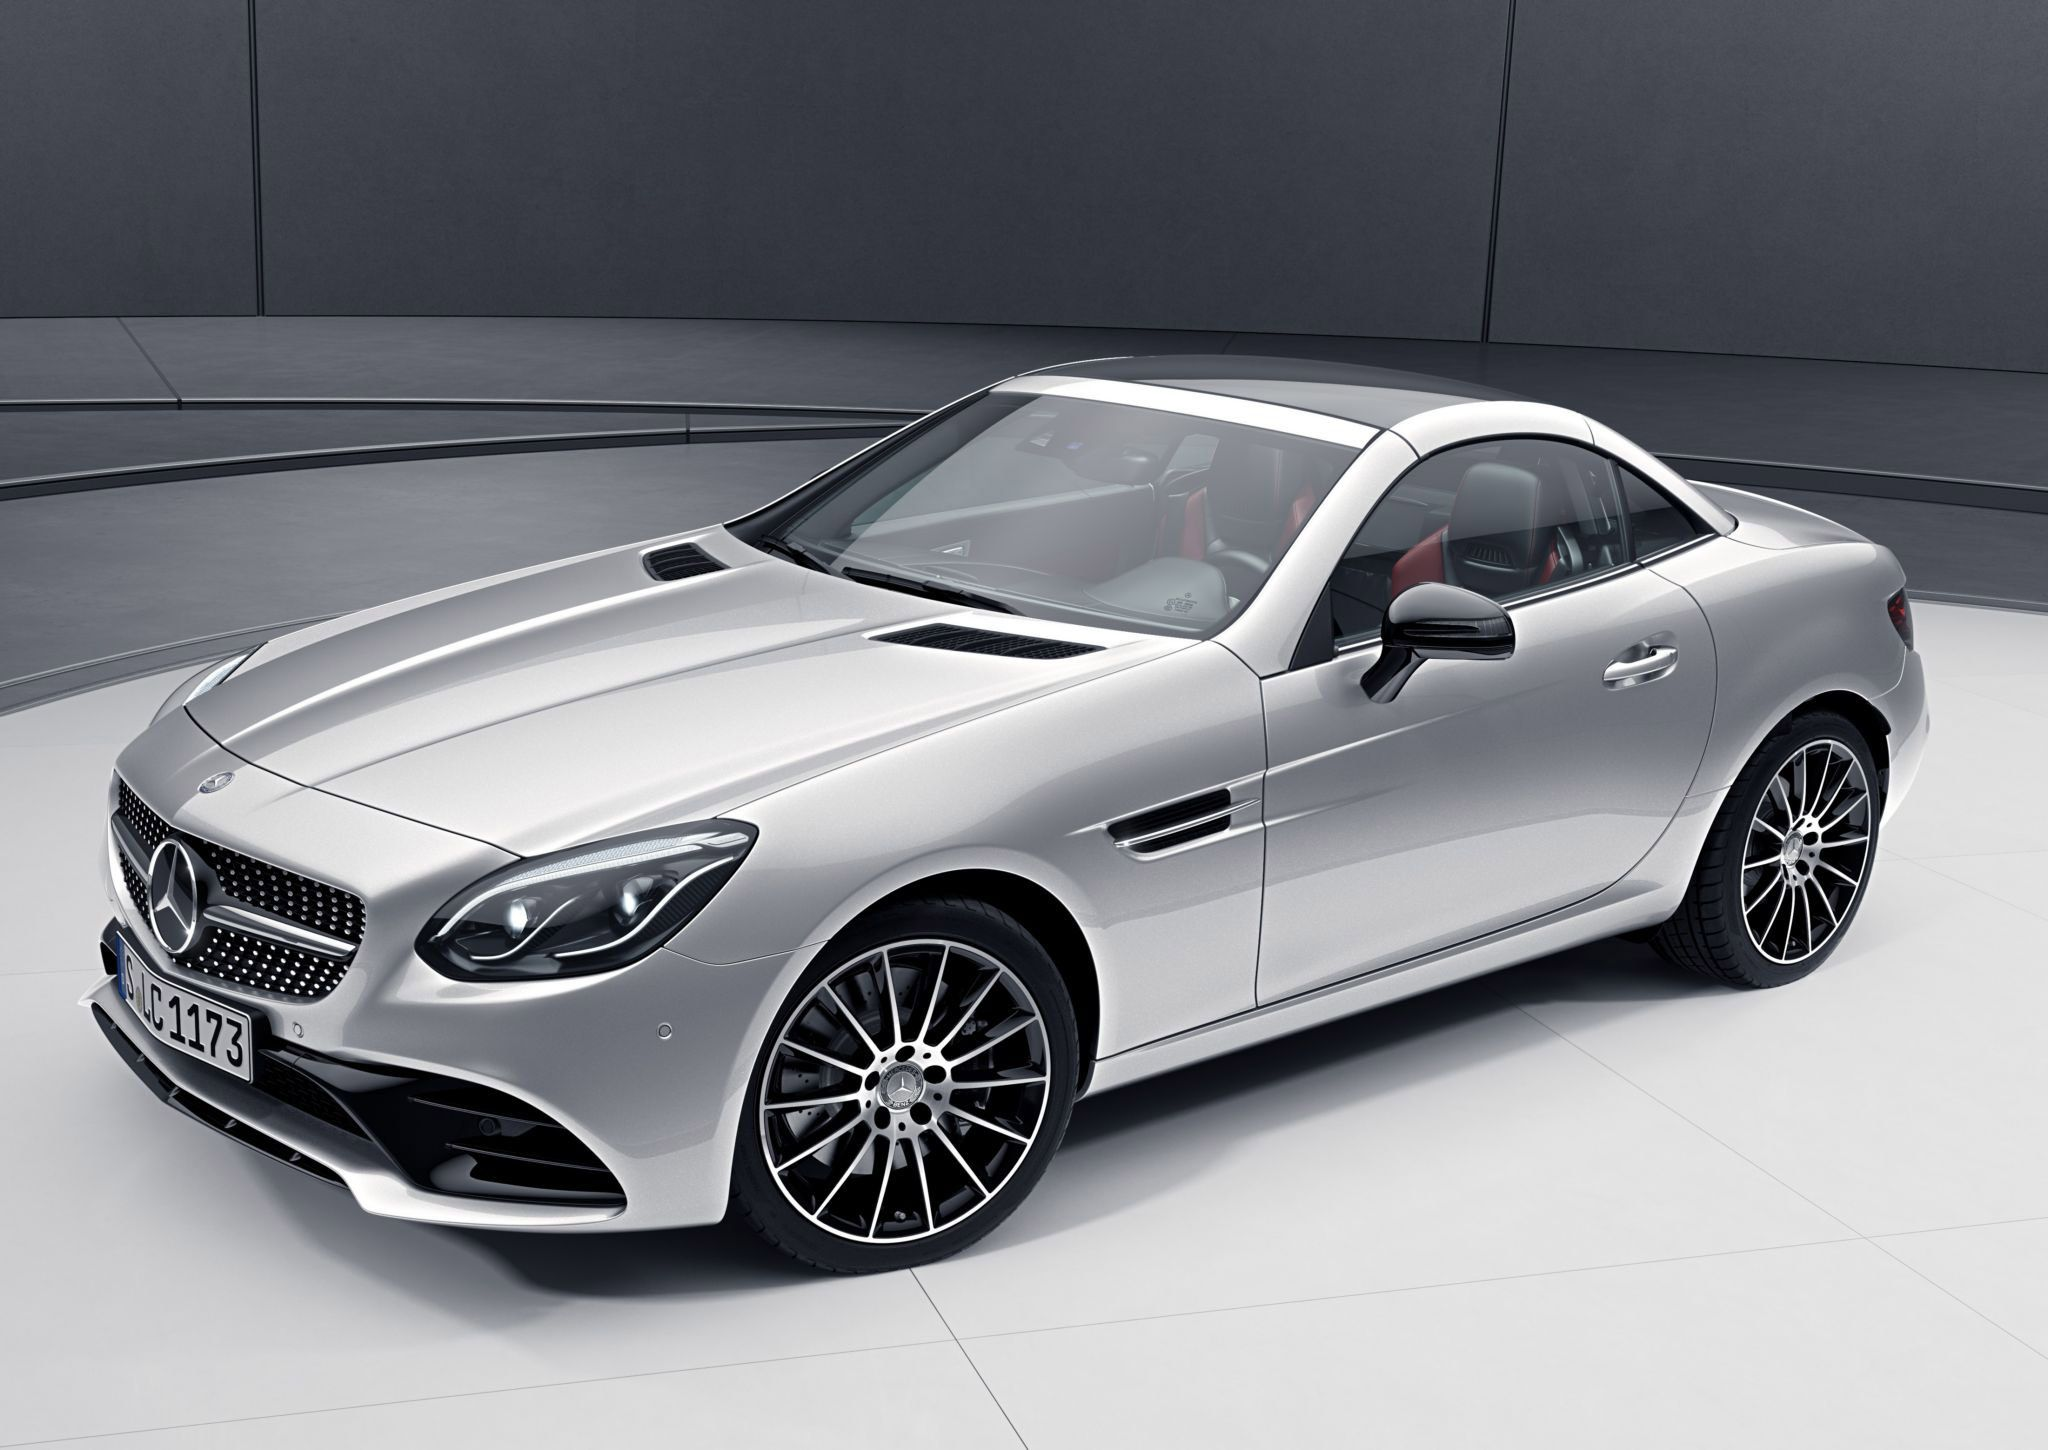 Mercedes Benz Slc Exclusively Gets A Stylish Night Pack Mercedes Benz Benz Mercedes